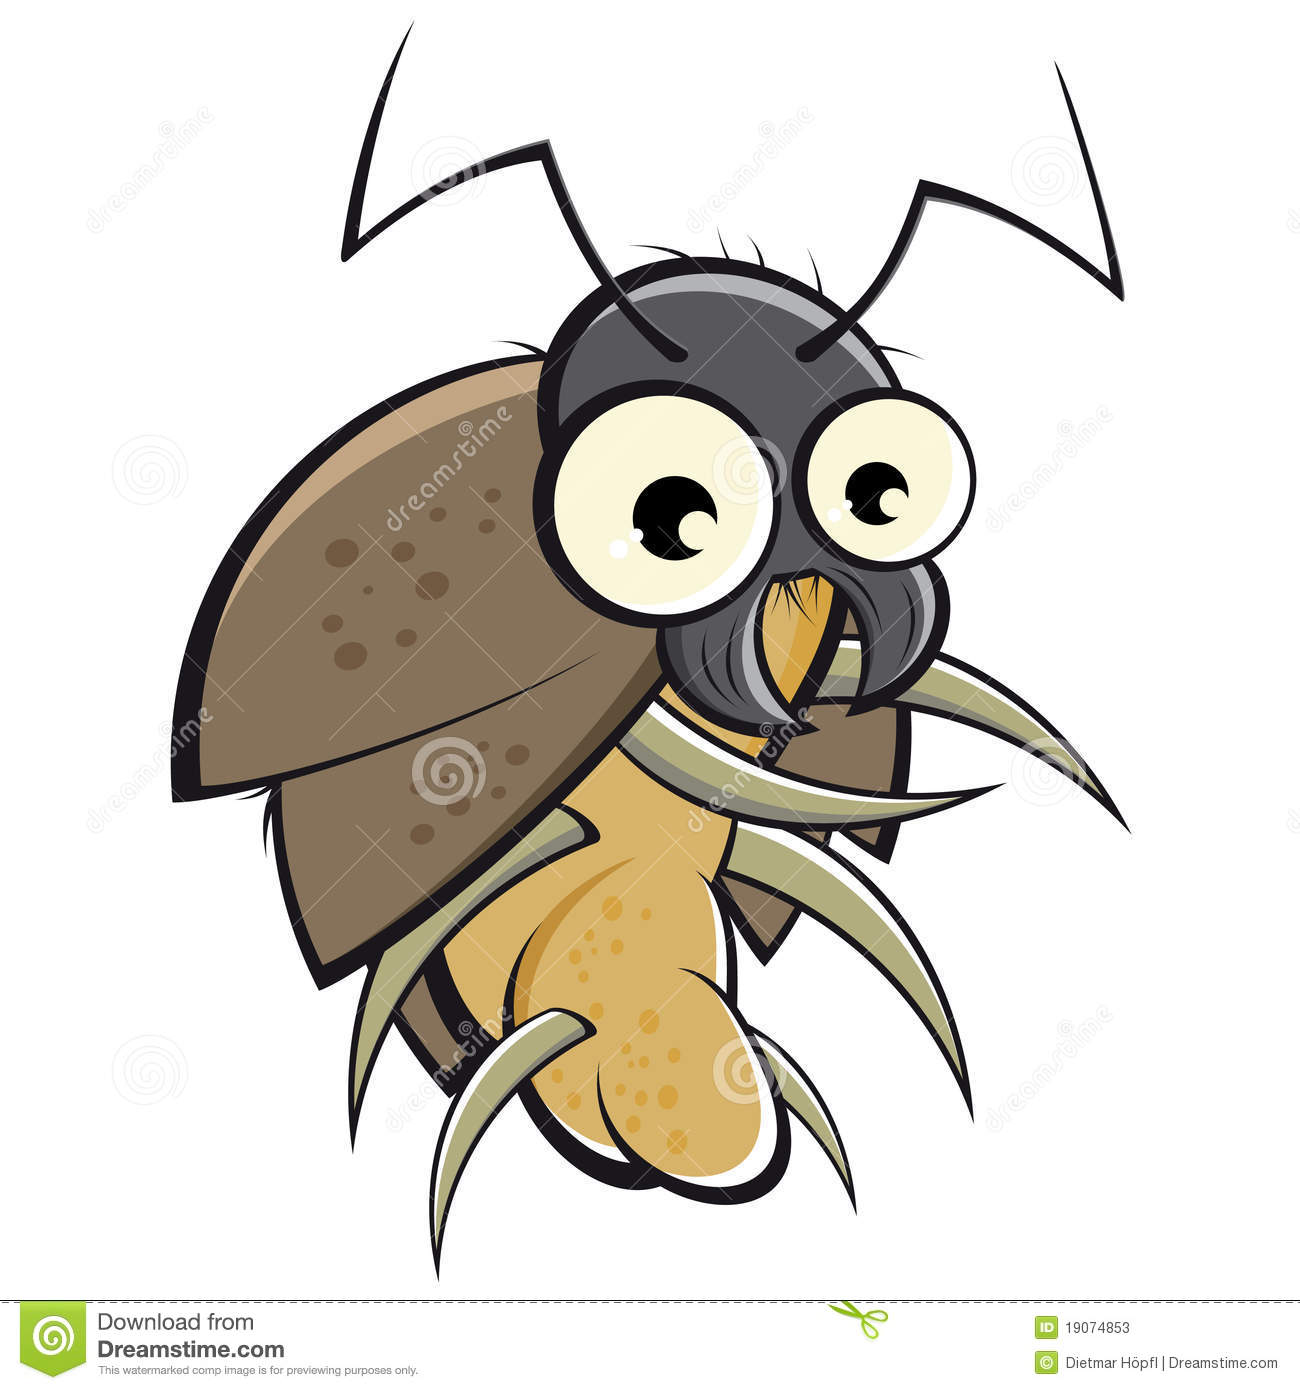 Kakerlaken Küchenschaben Cartoon Beetle Stock Vector Image Of Clipart Grey